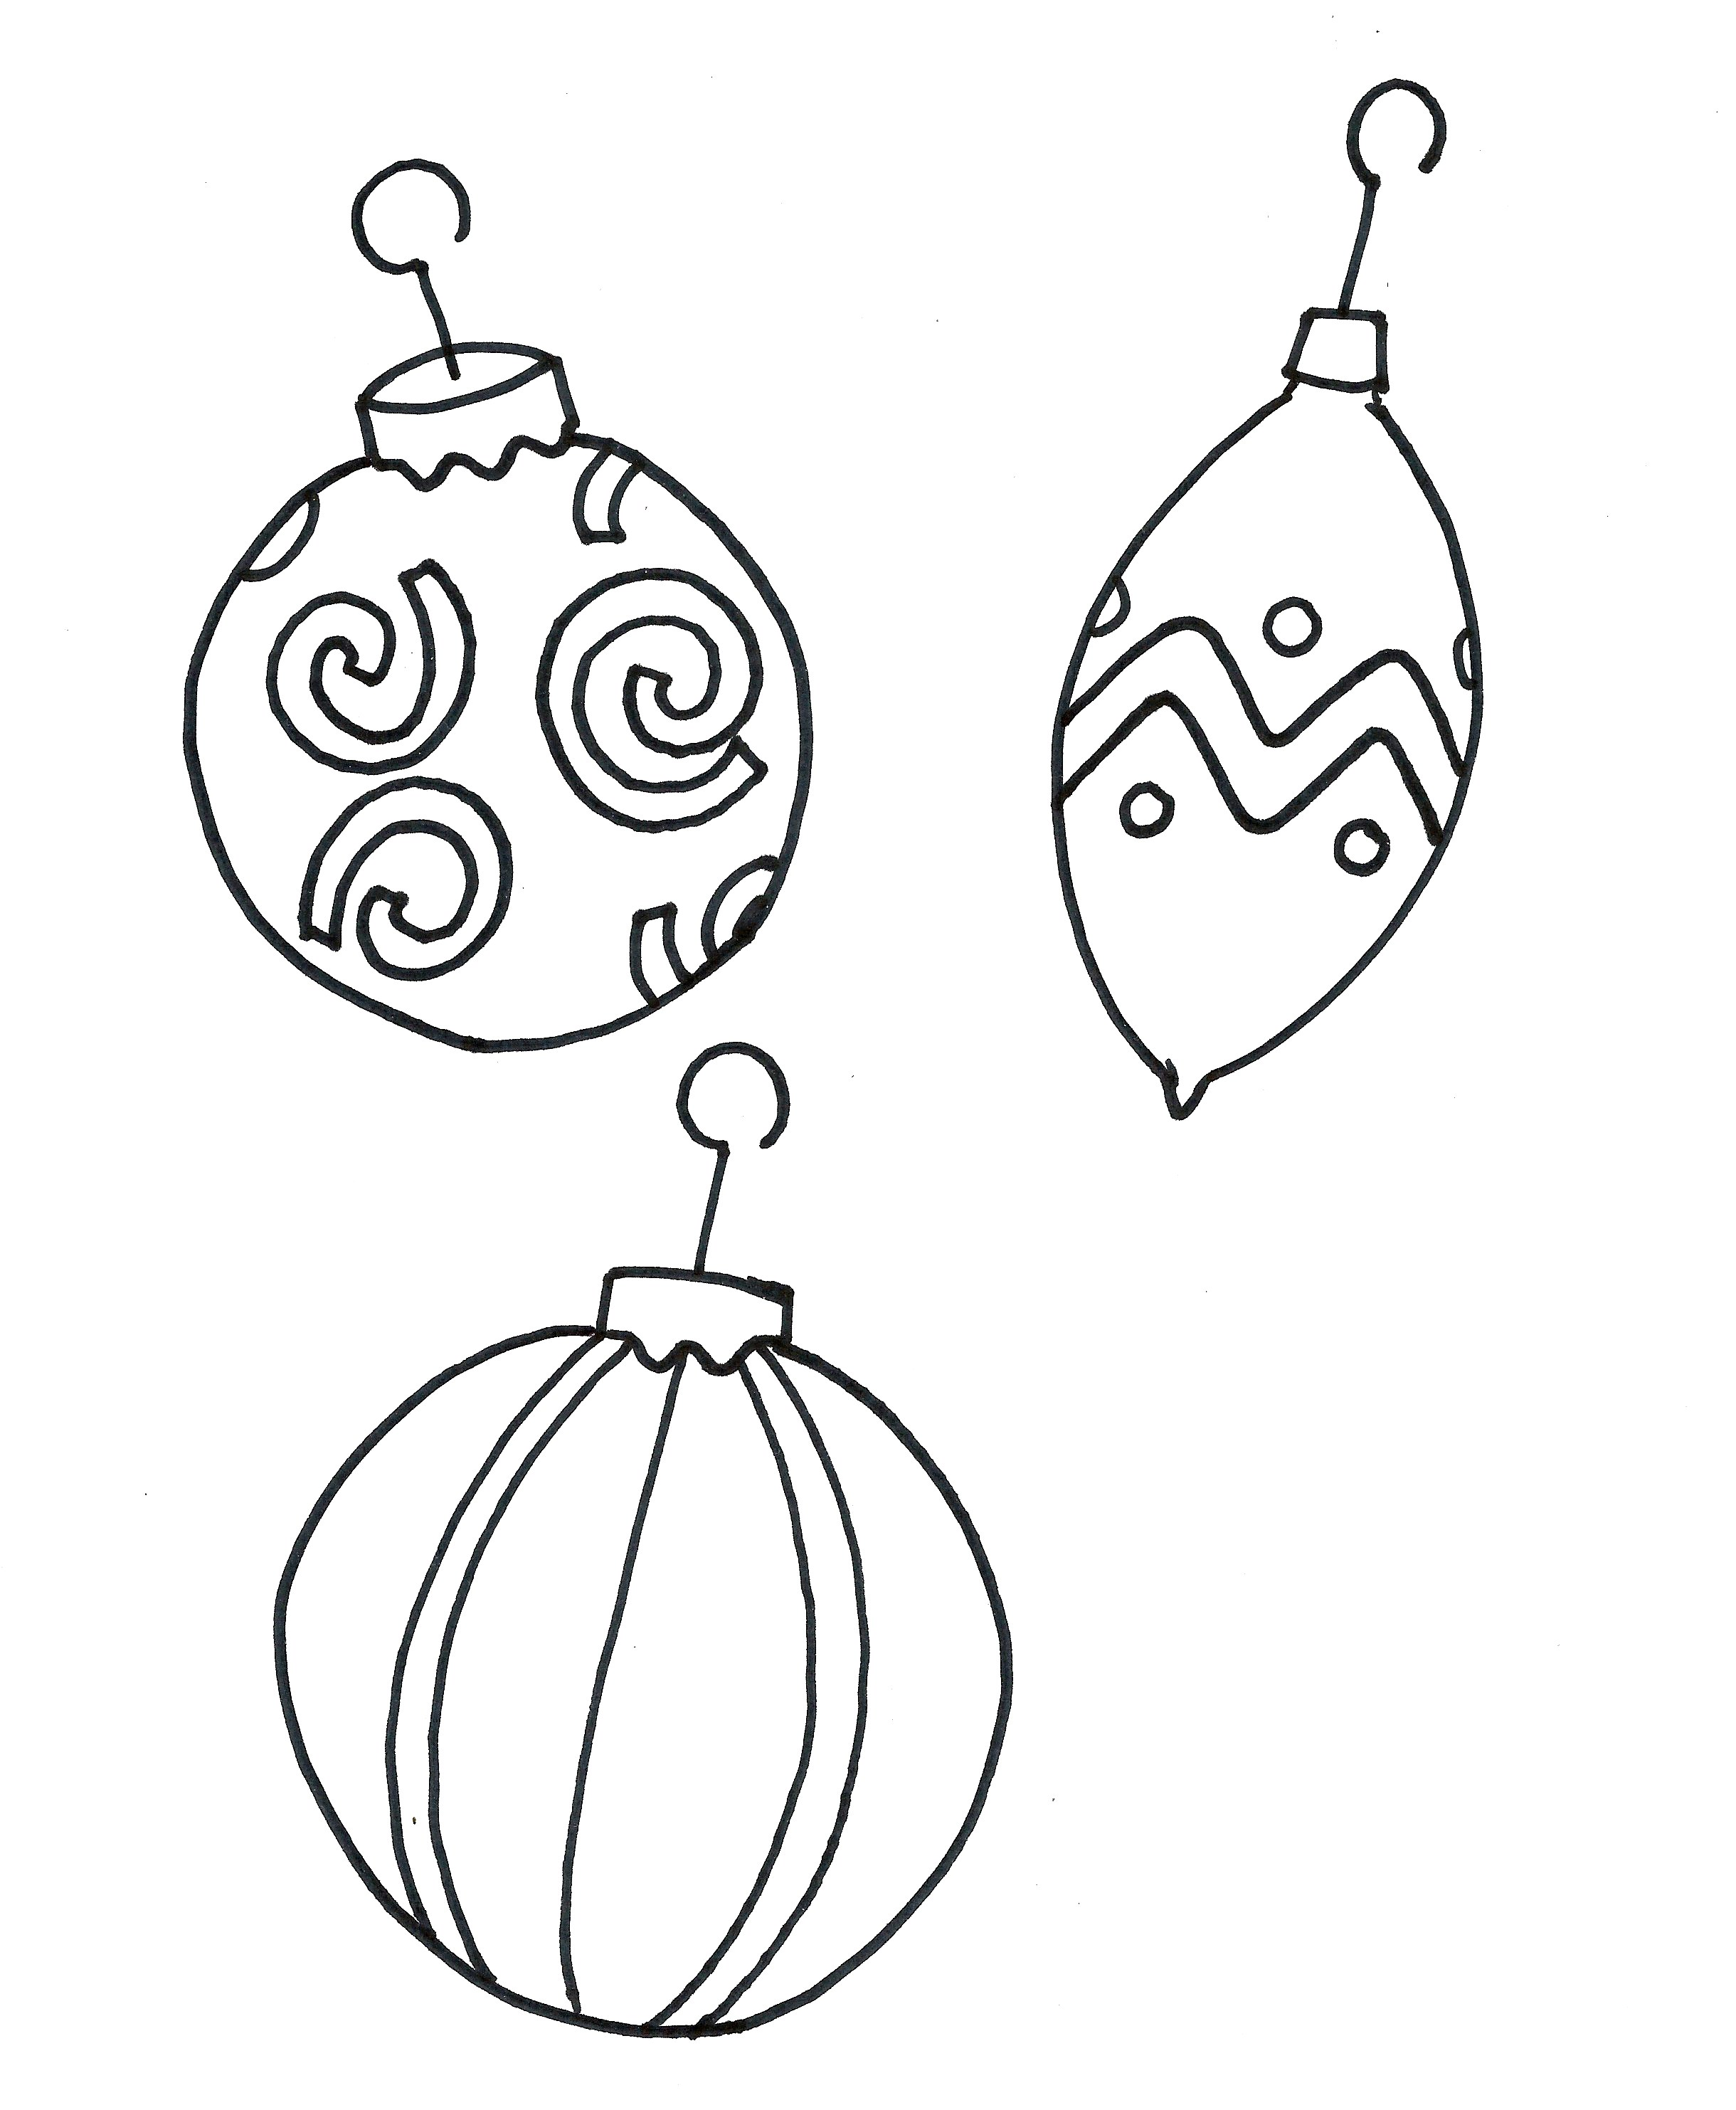 Ornament Coloring Pages To Download And Print For Free